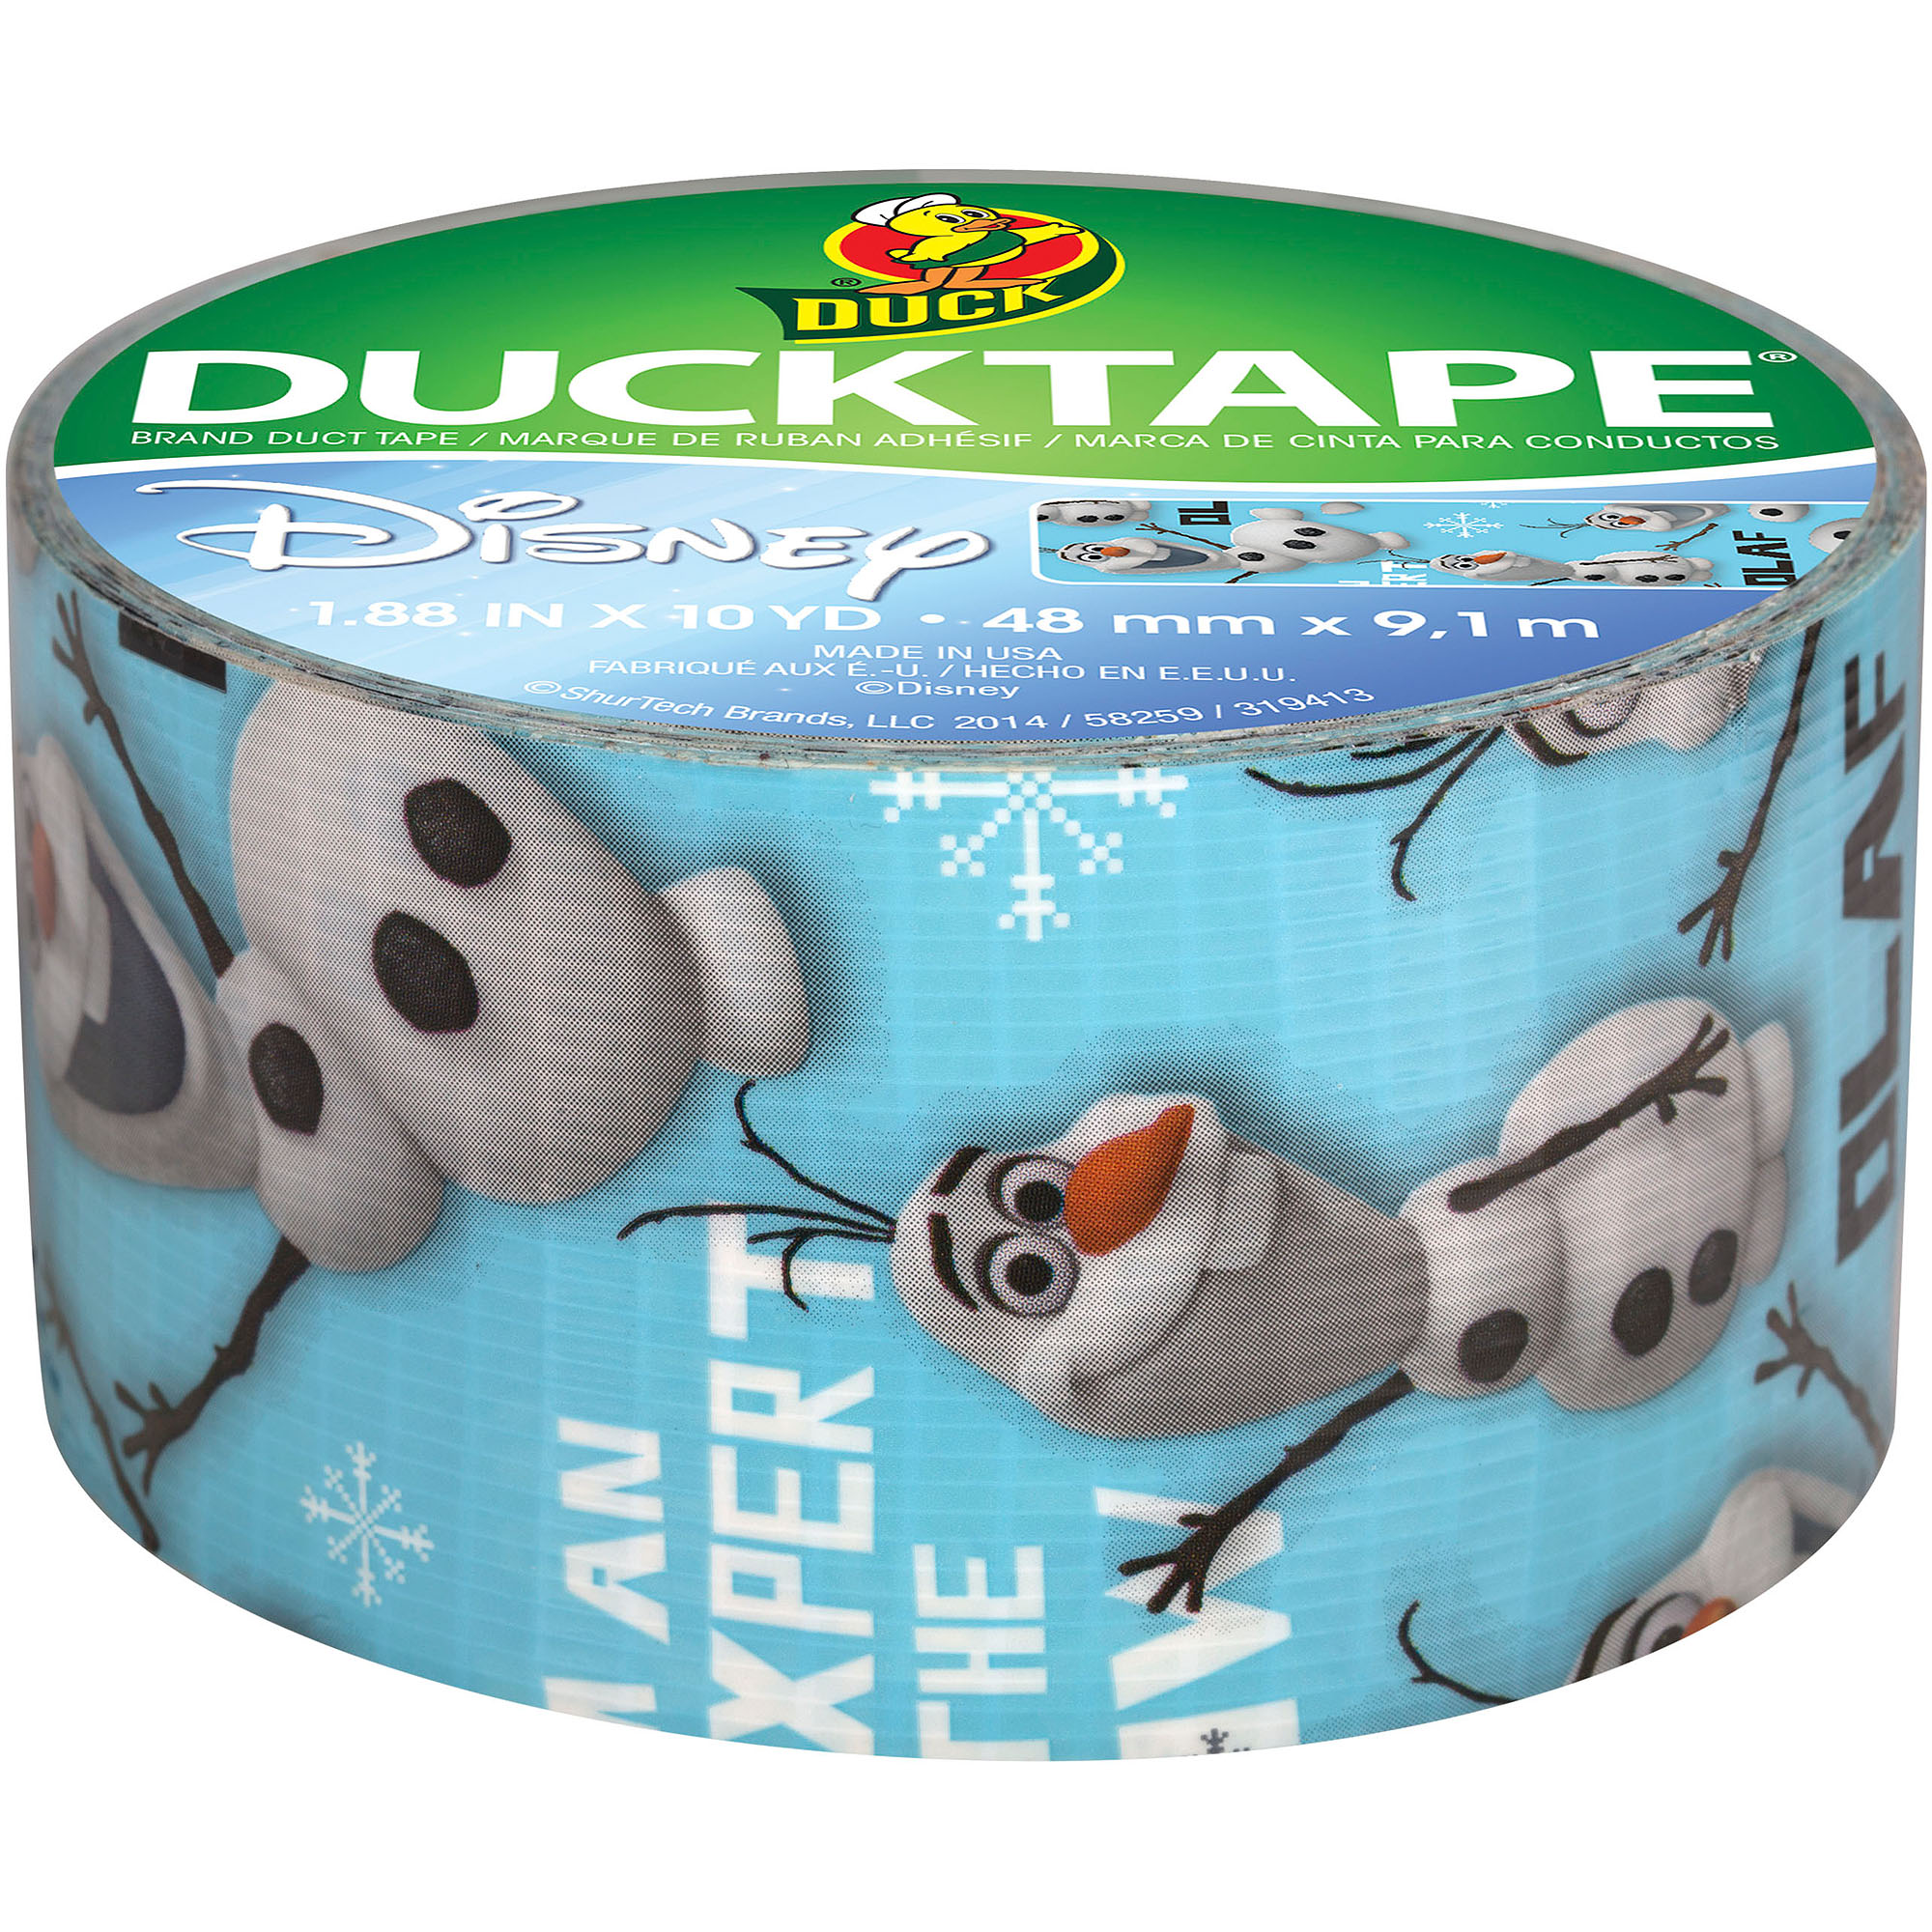 Duck Brand Disney Frozen Duct Tape, Olaf